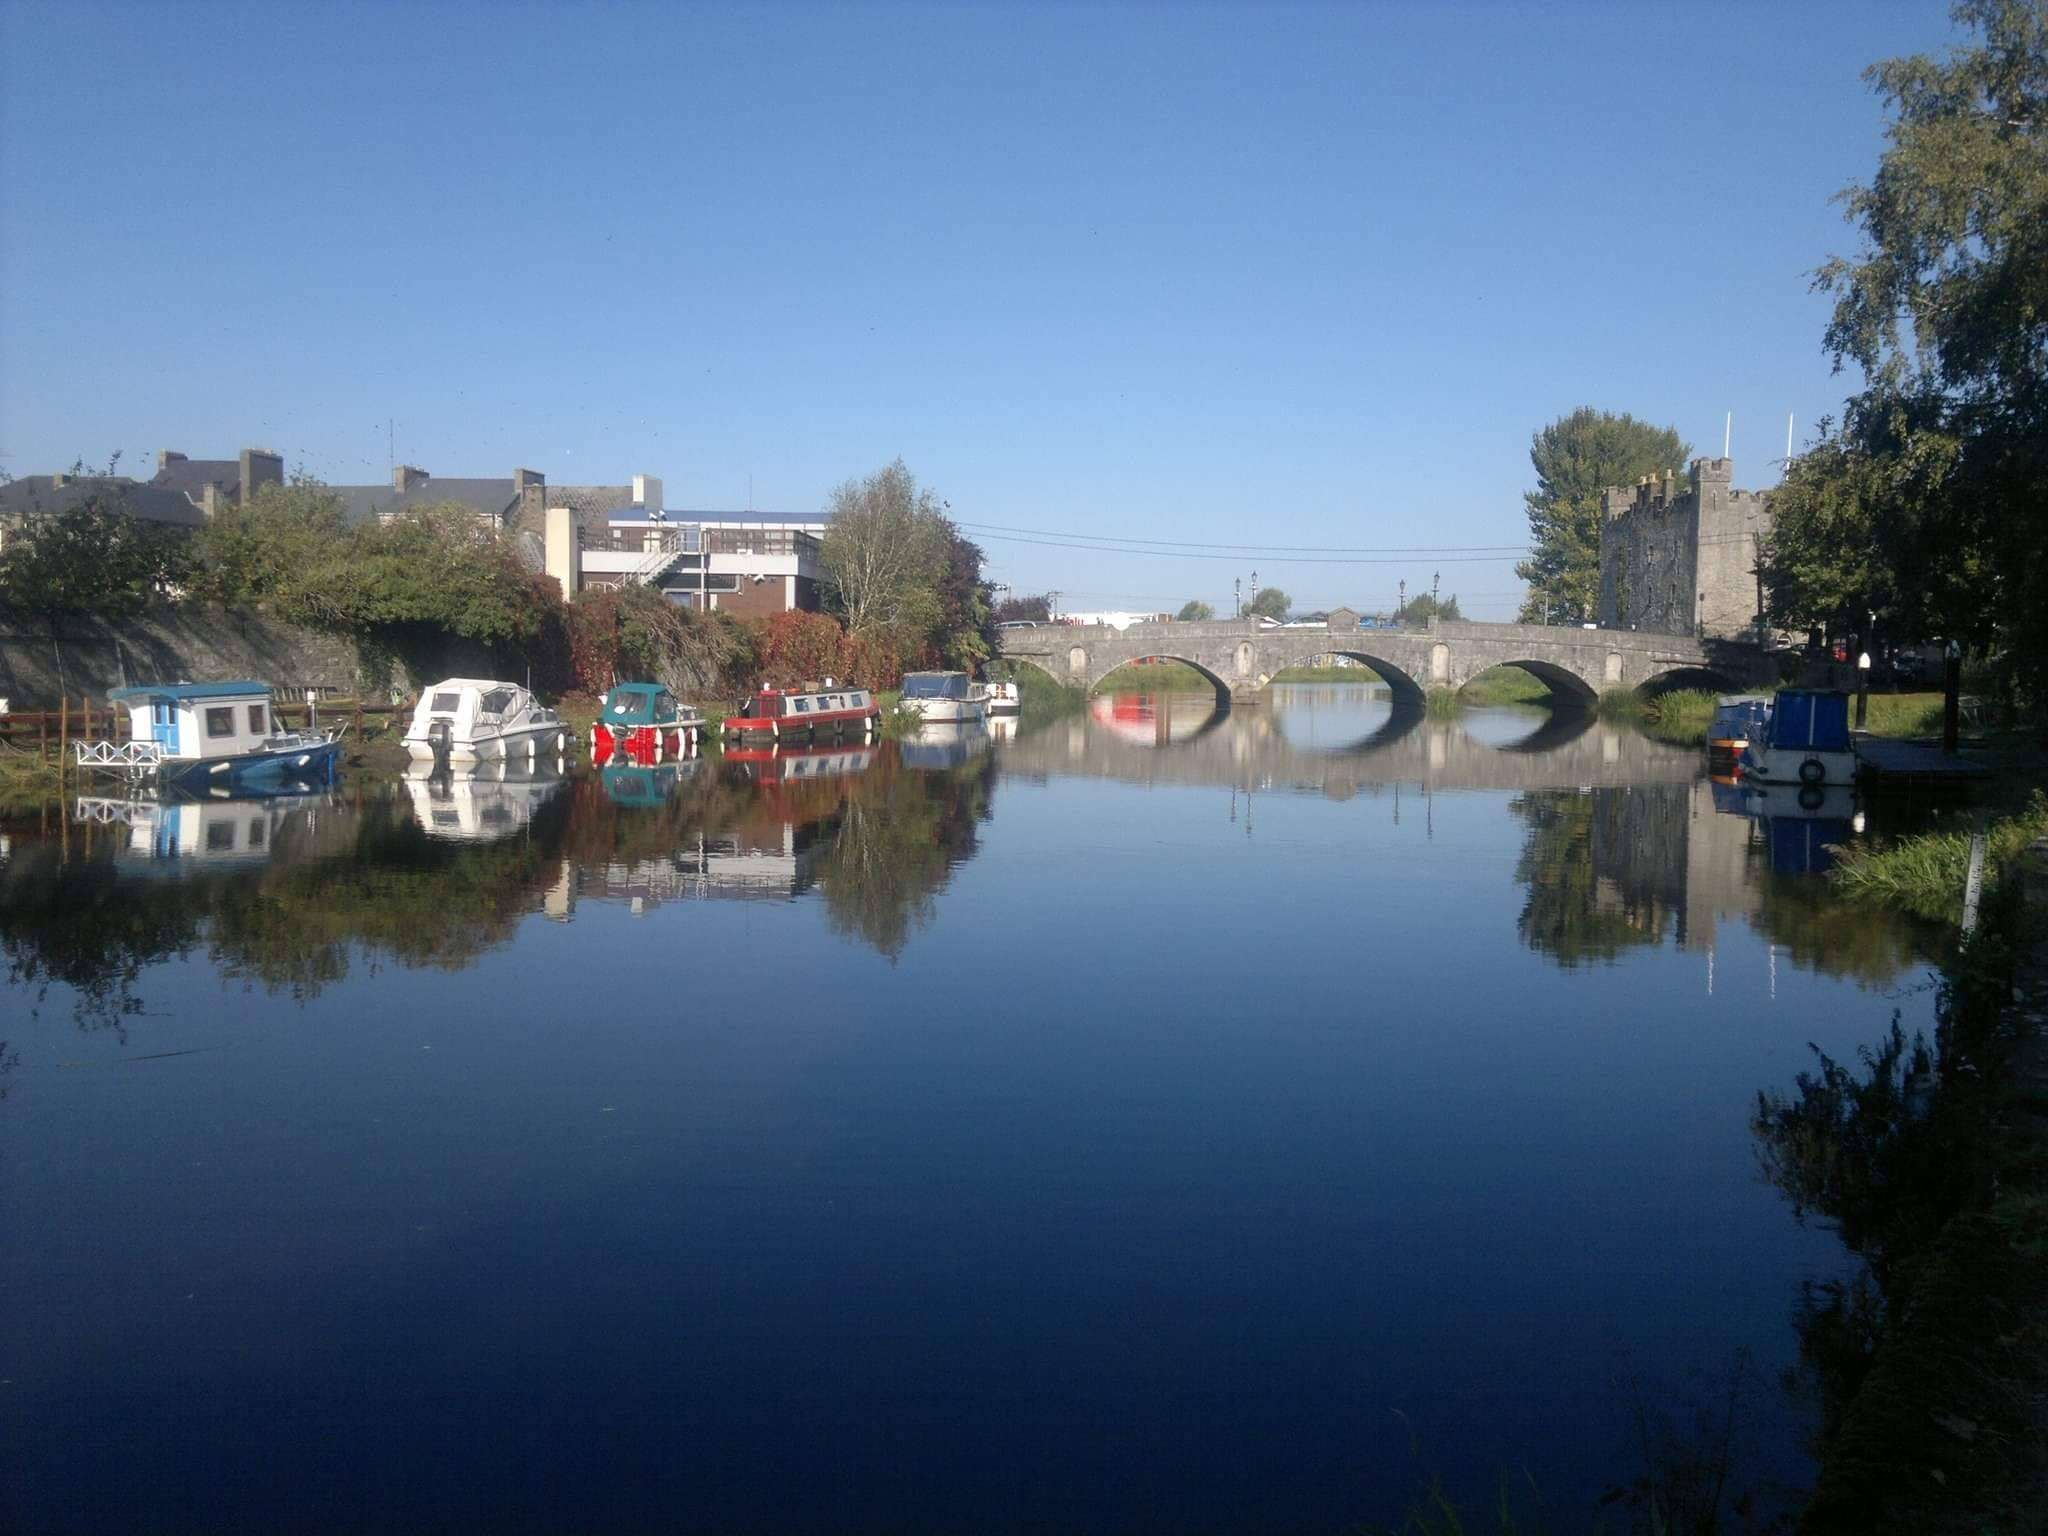 Picture of Athy Town taken from the water. In the middle background is a stone bridge called Crom-a-boo and next to it is Whites Castle. On either side of the river , boats are moored. The sky in bright blue and reflected in the river.